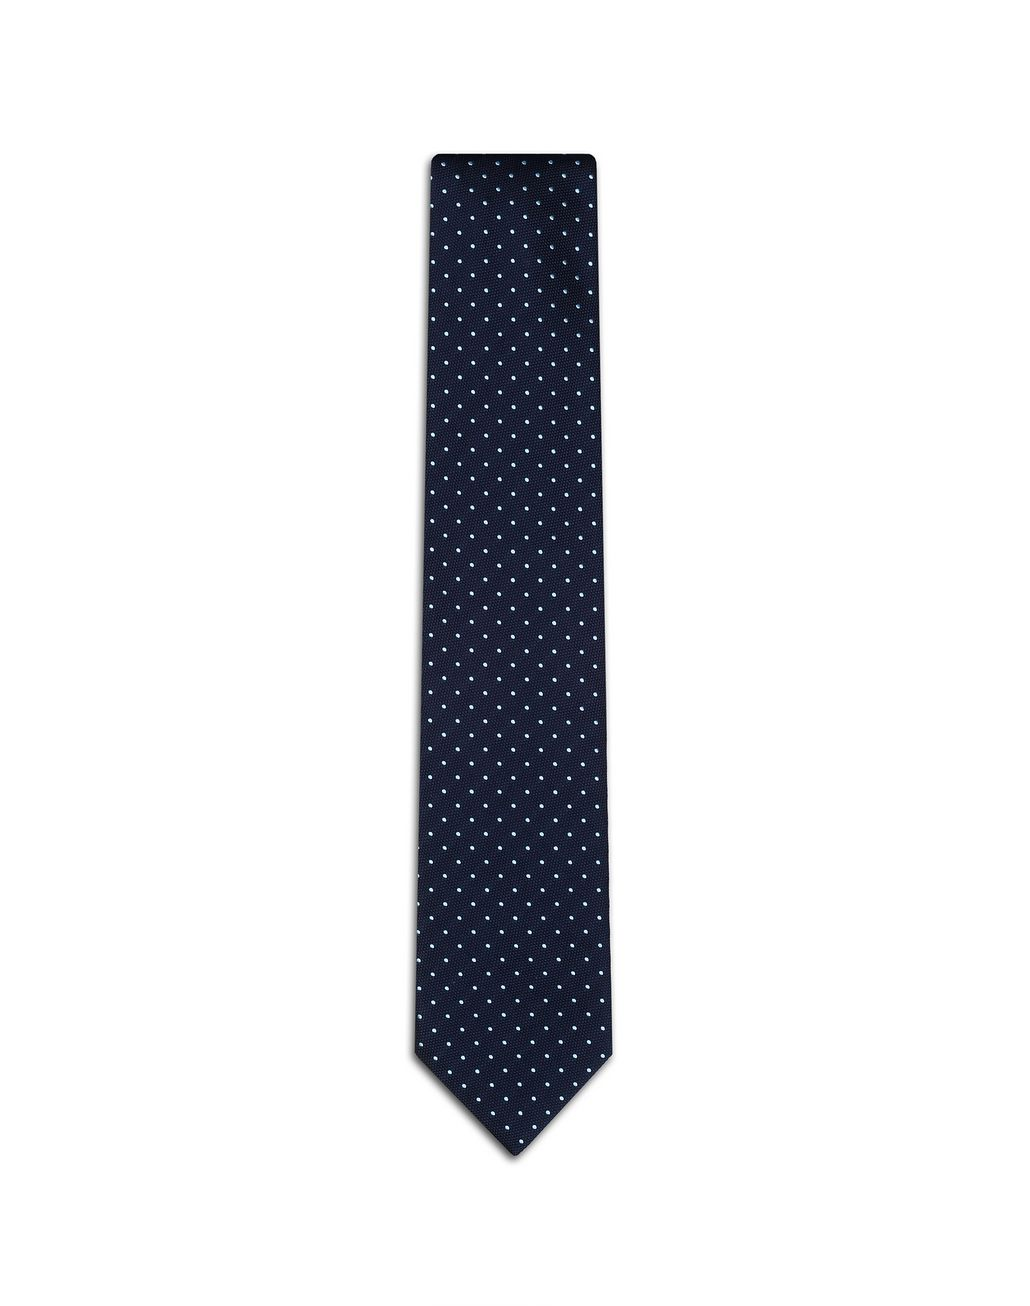 BRIONI Navy Blue Dotted Tie Tie Man f